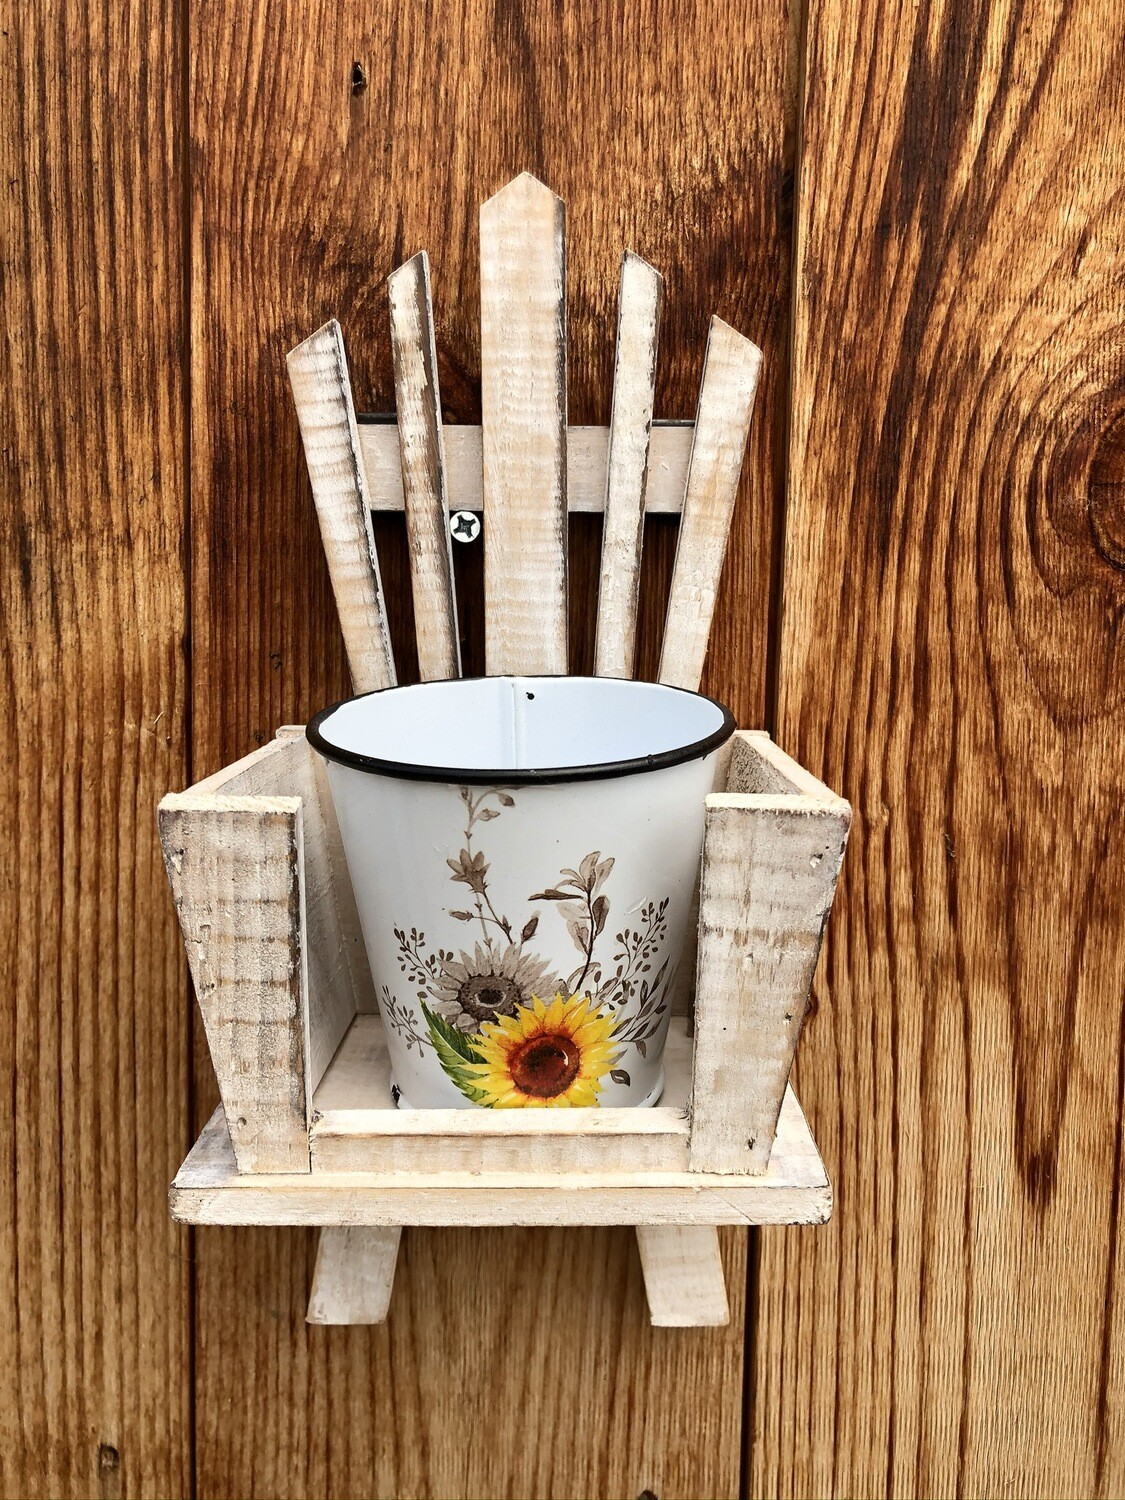 Garden Decor | Sunflower Chair Planter